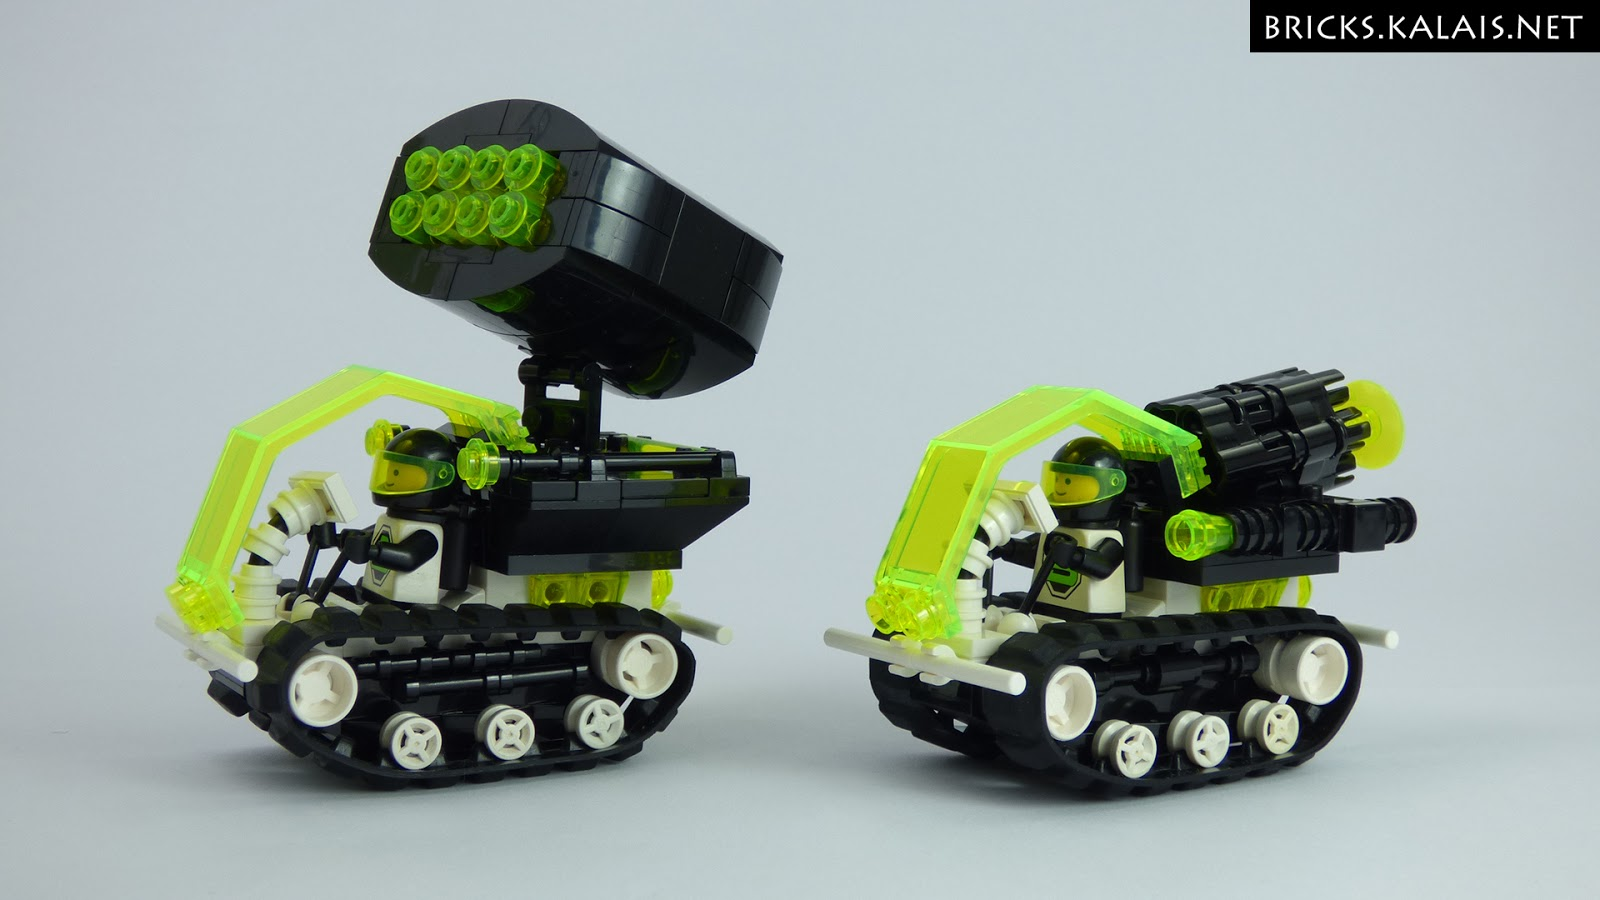 [MOC] Blacktron tracked mini-vehicles